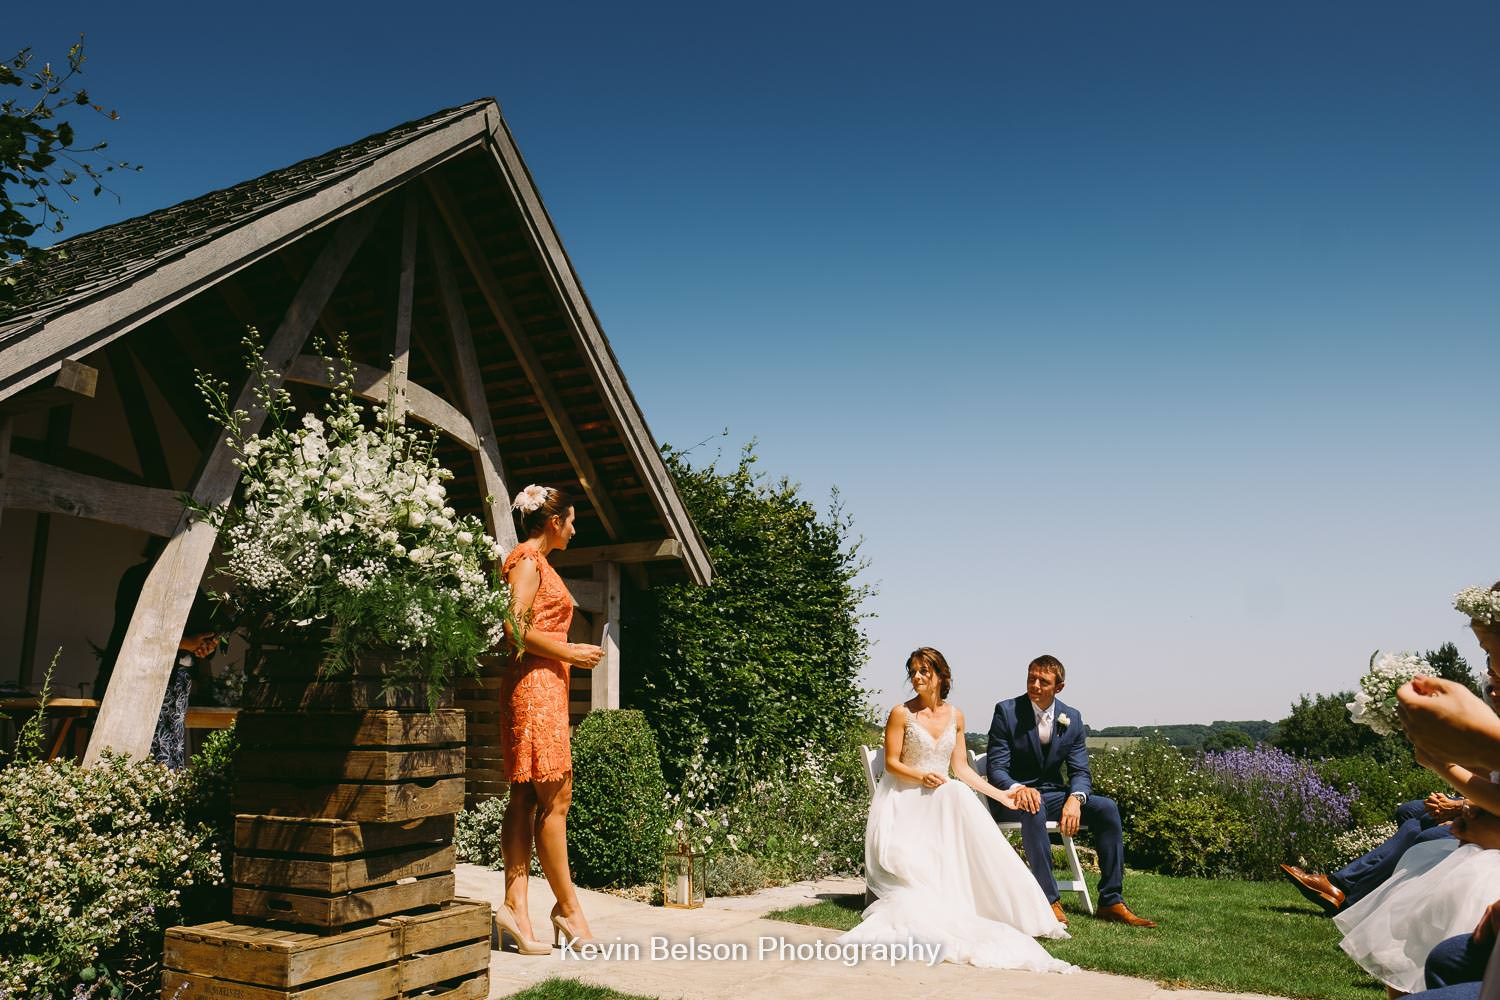 outdoor cermony at Kingscote Barn